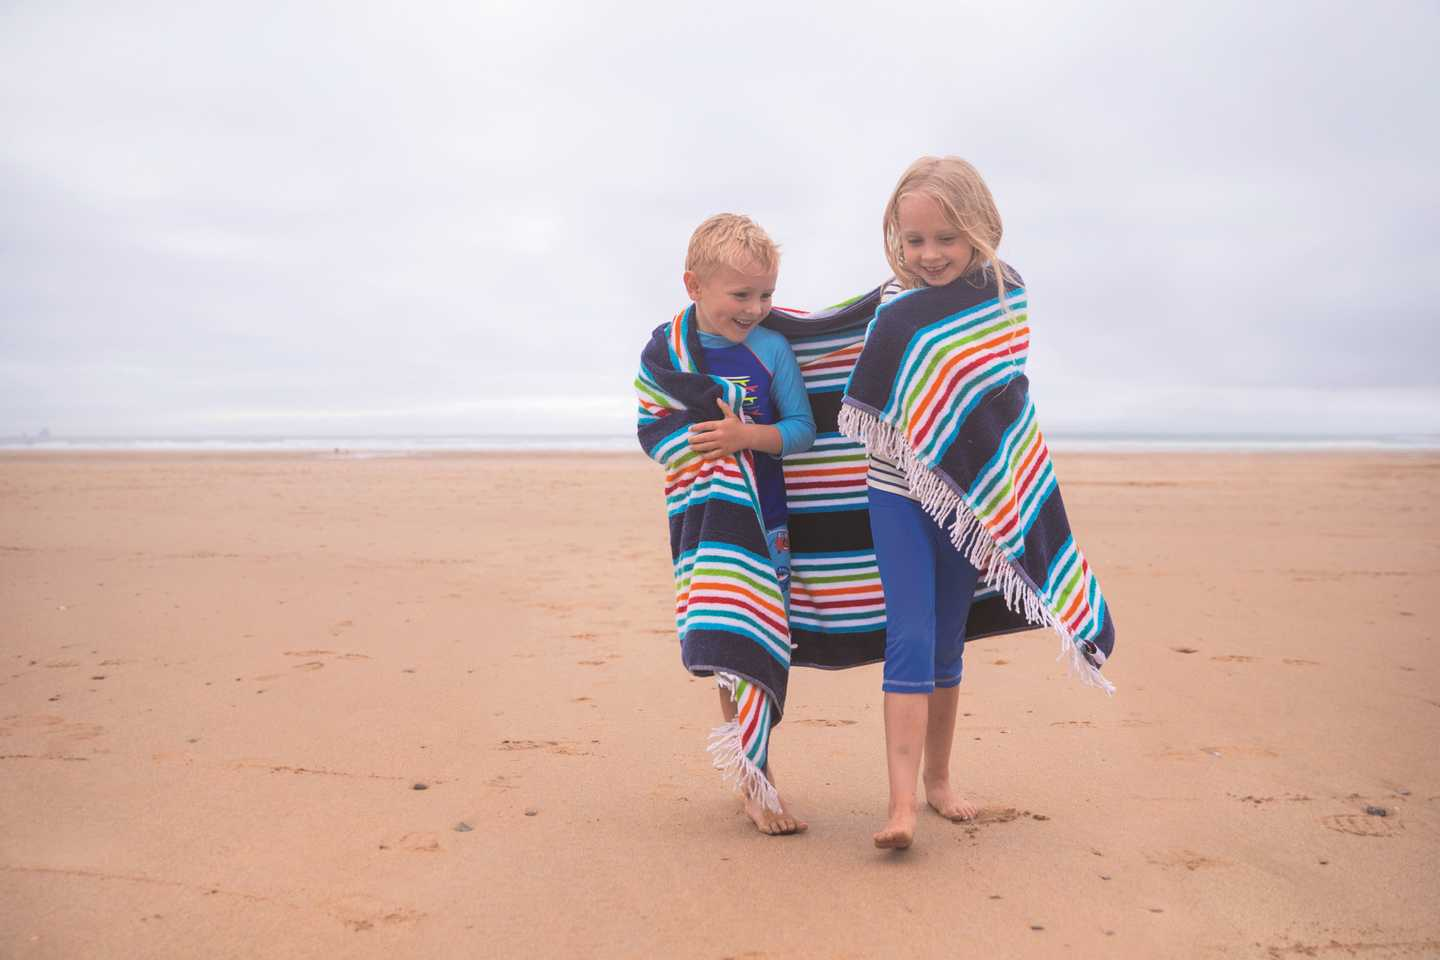 Children wrapped in a towel walking along the beach